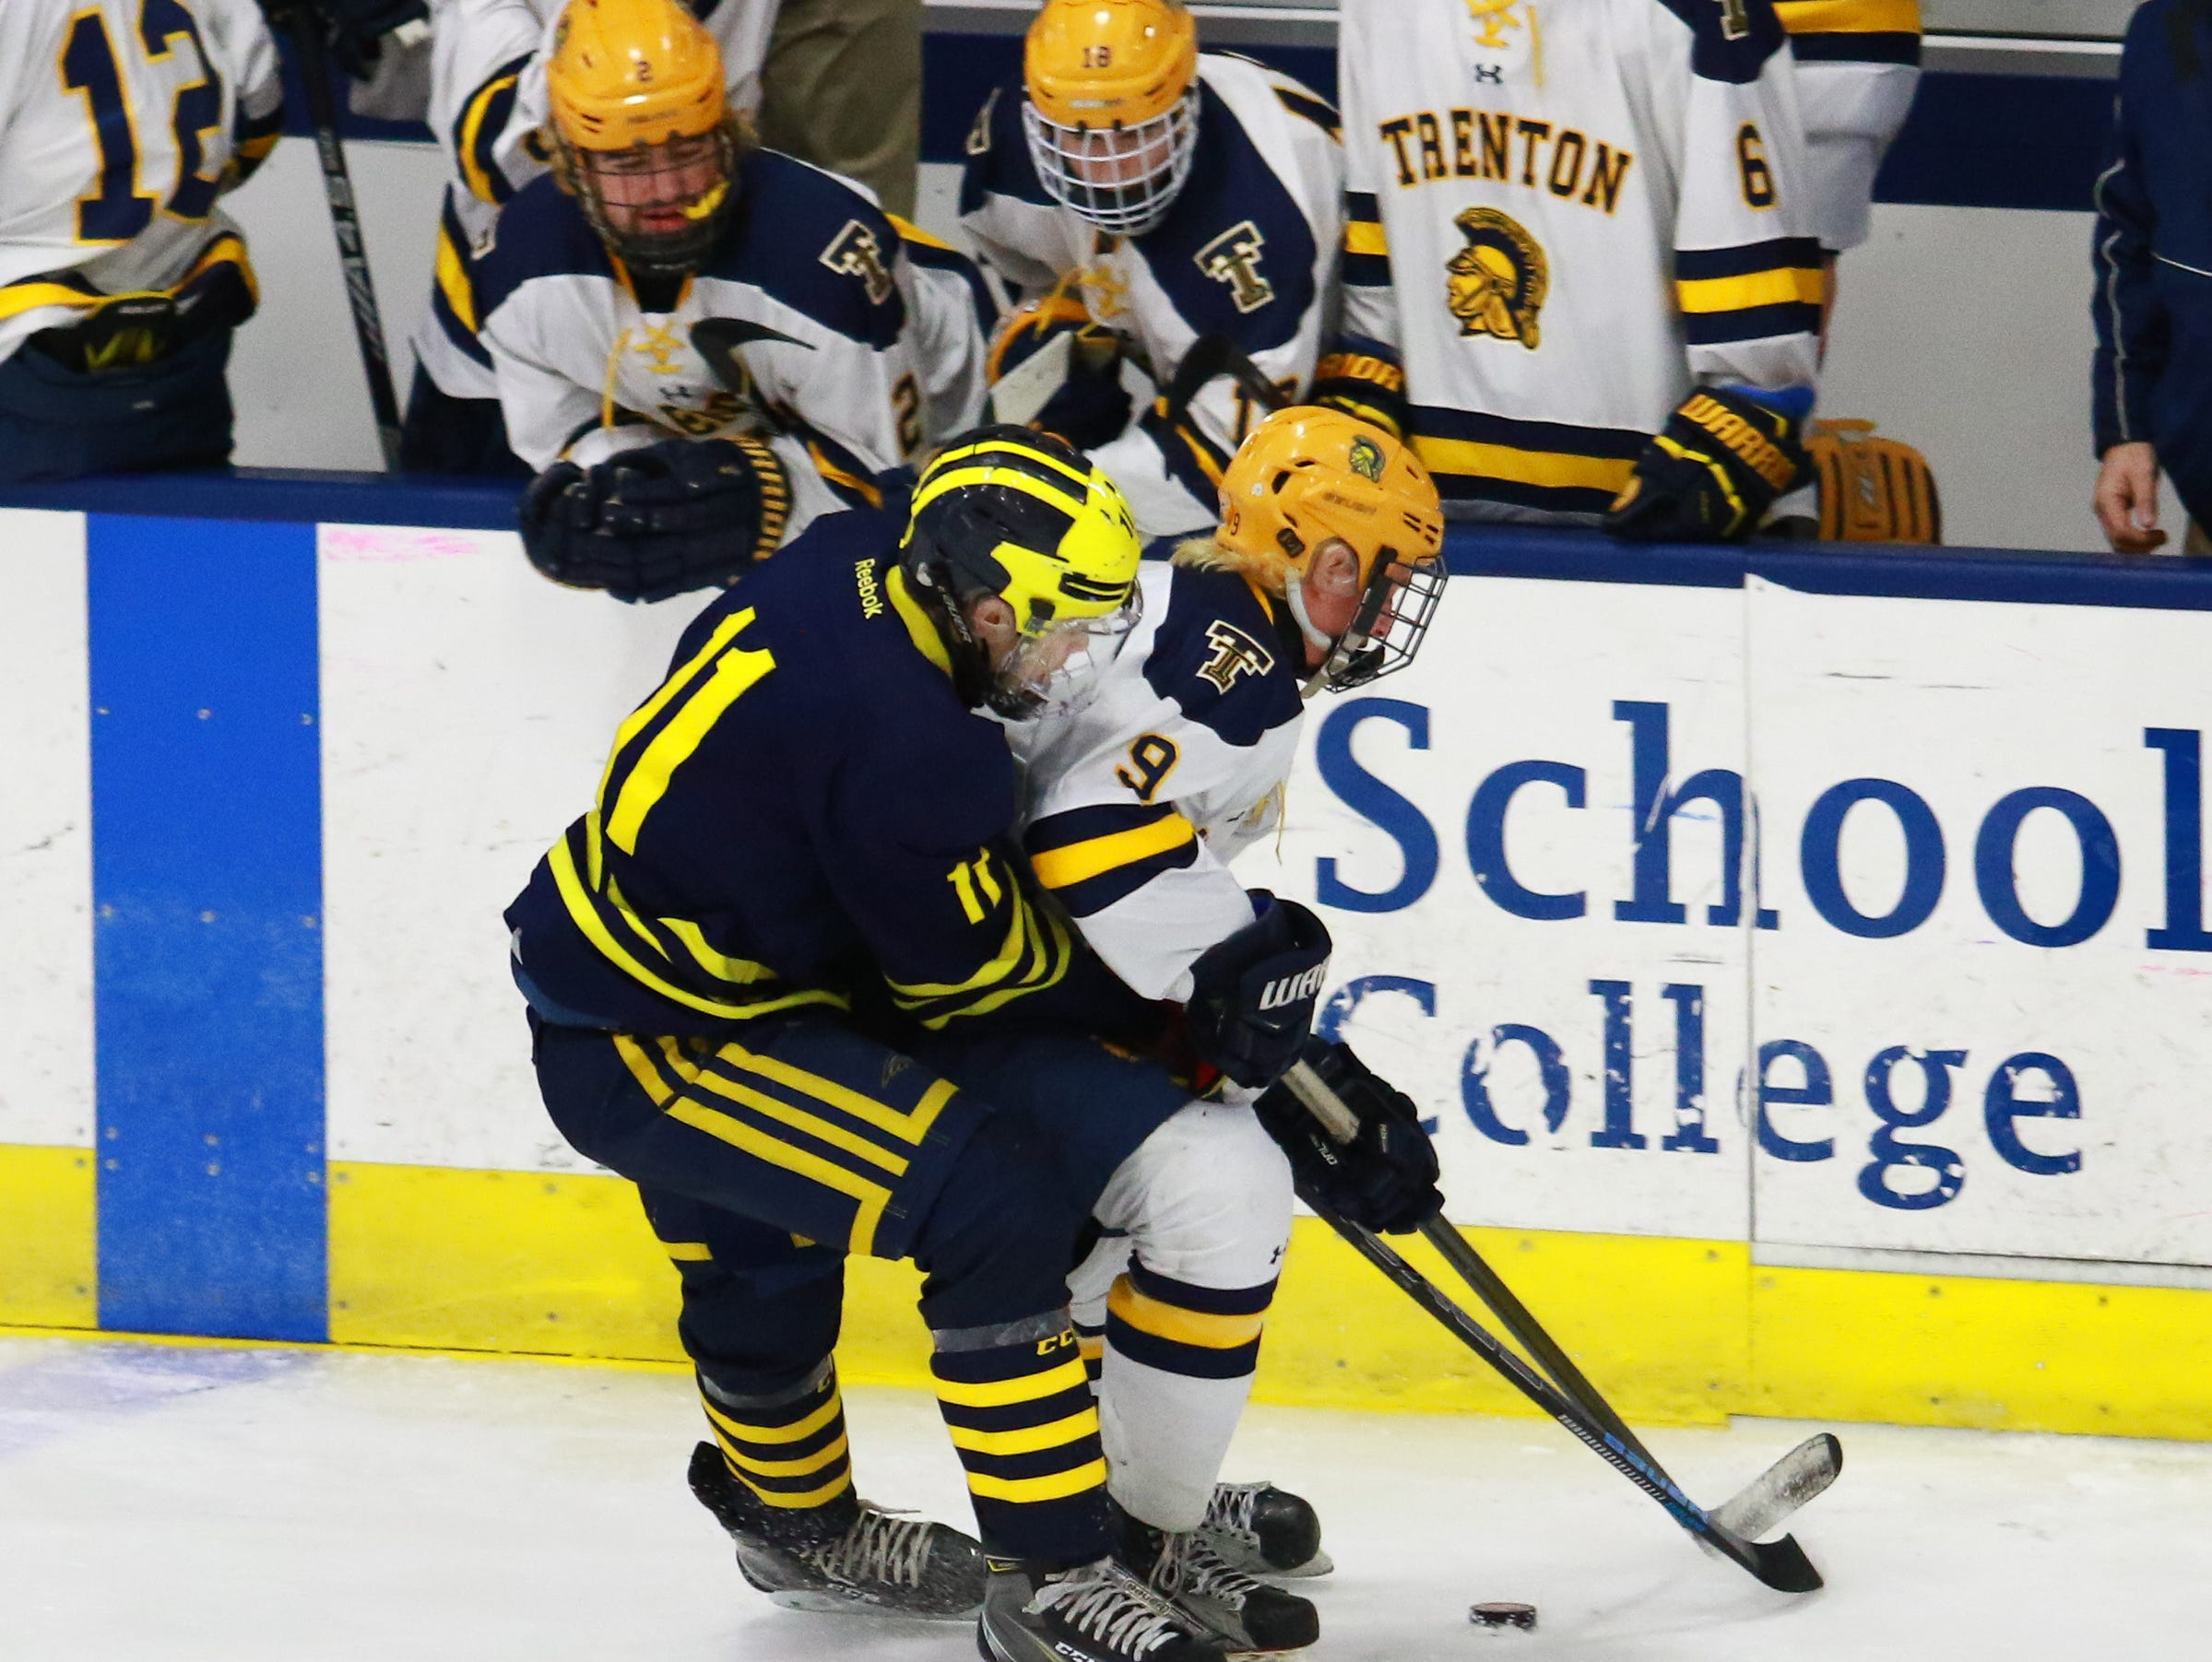 Hartland's Gabe Anderson battles with Caleb Kneiding (9) in a 4-0 victory over Trenton in the state Division 2 championship hockey game on Saturday, March 9, 2019 at USA Hockey Arena.